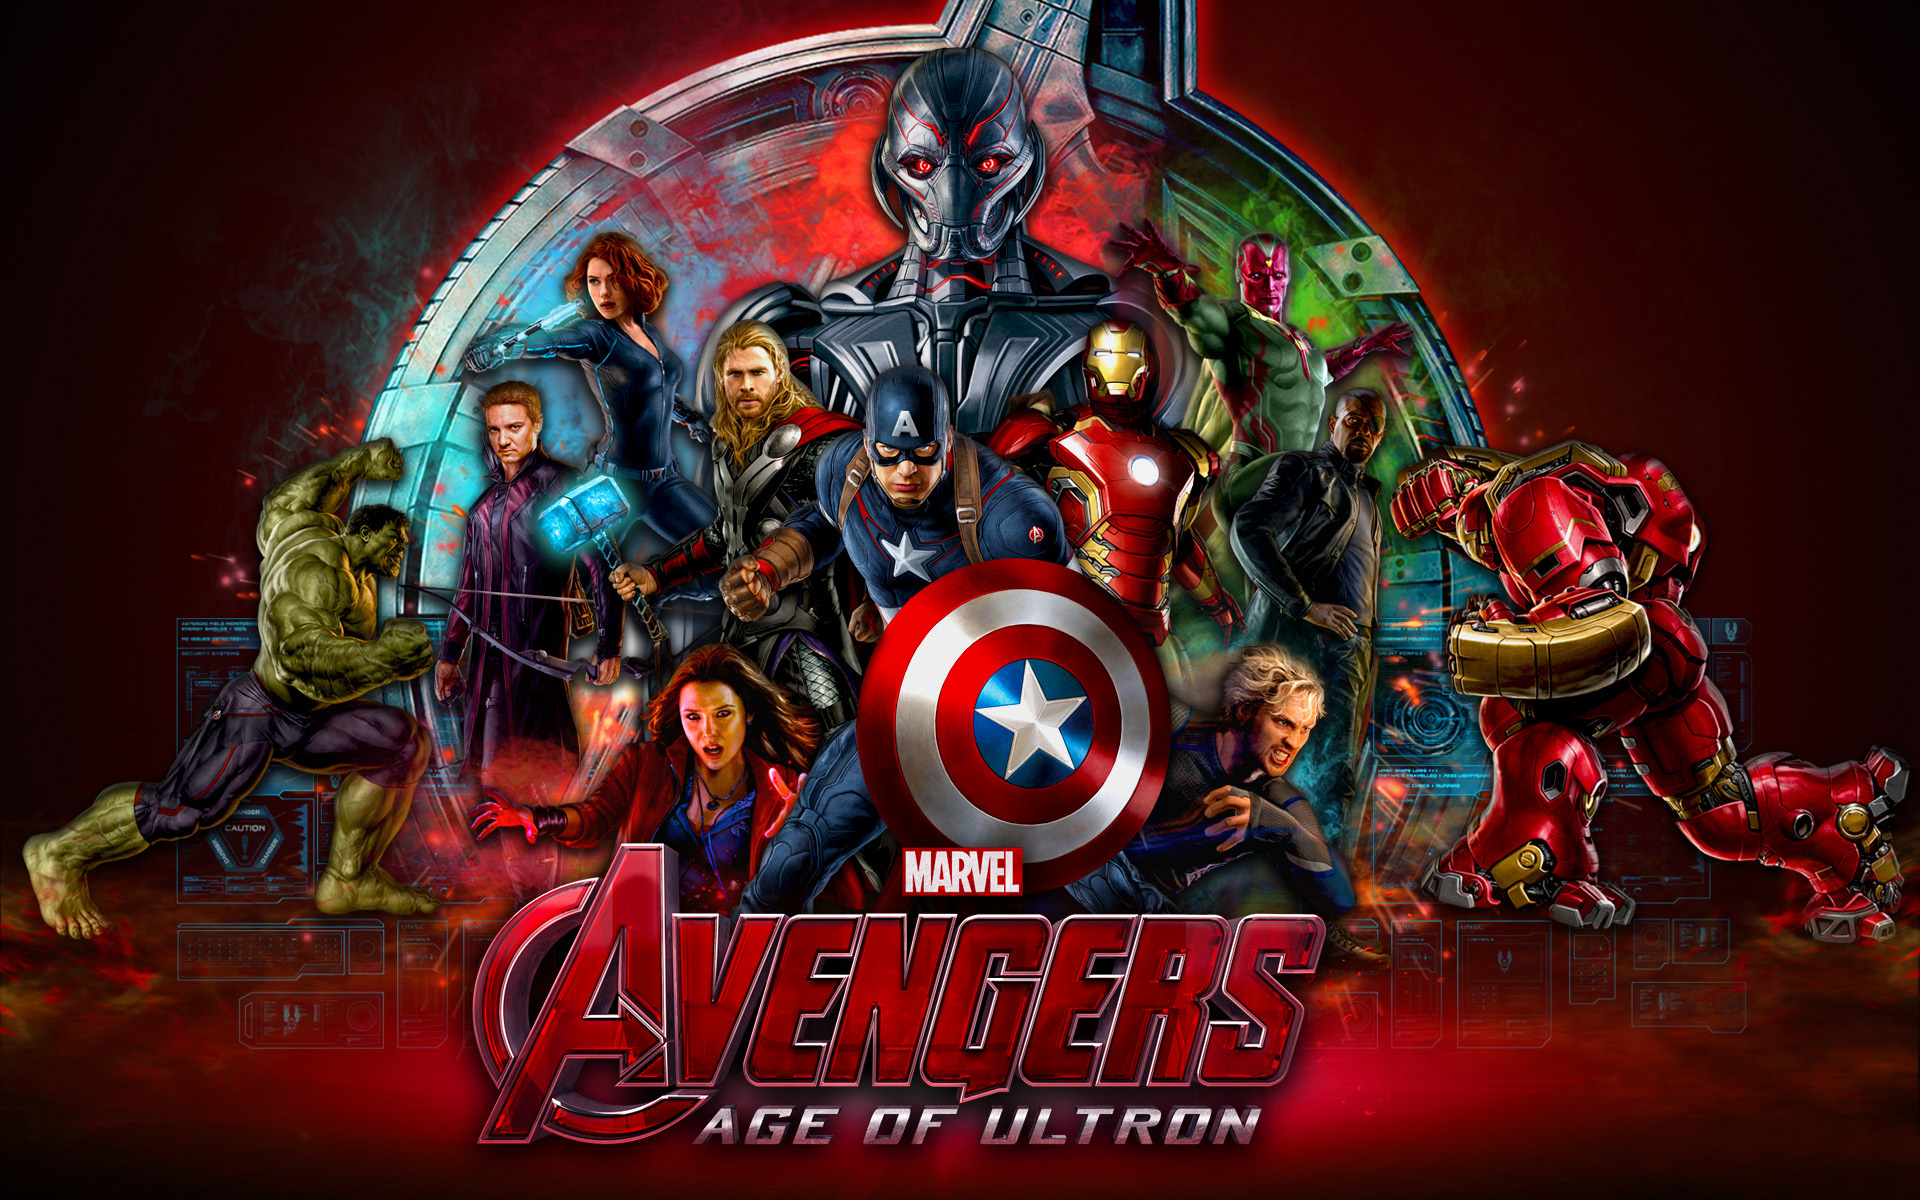 Marvel Studios Avengers Age Of Ultron 2015 Desktop Wallpaper Hd 1920x1200